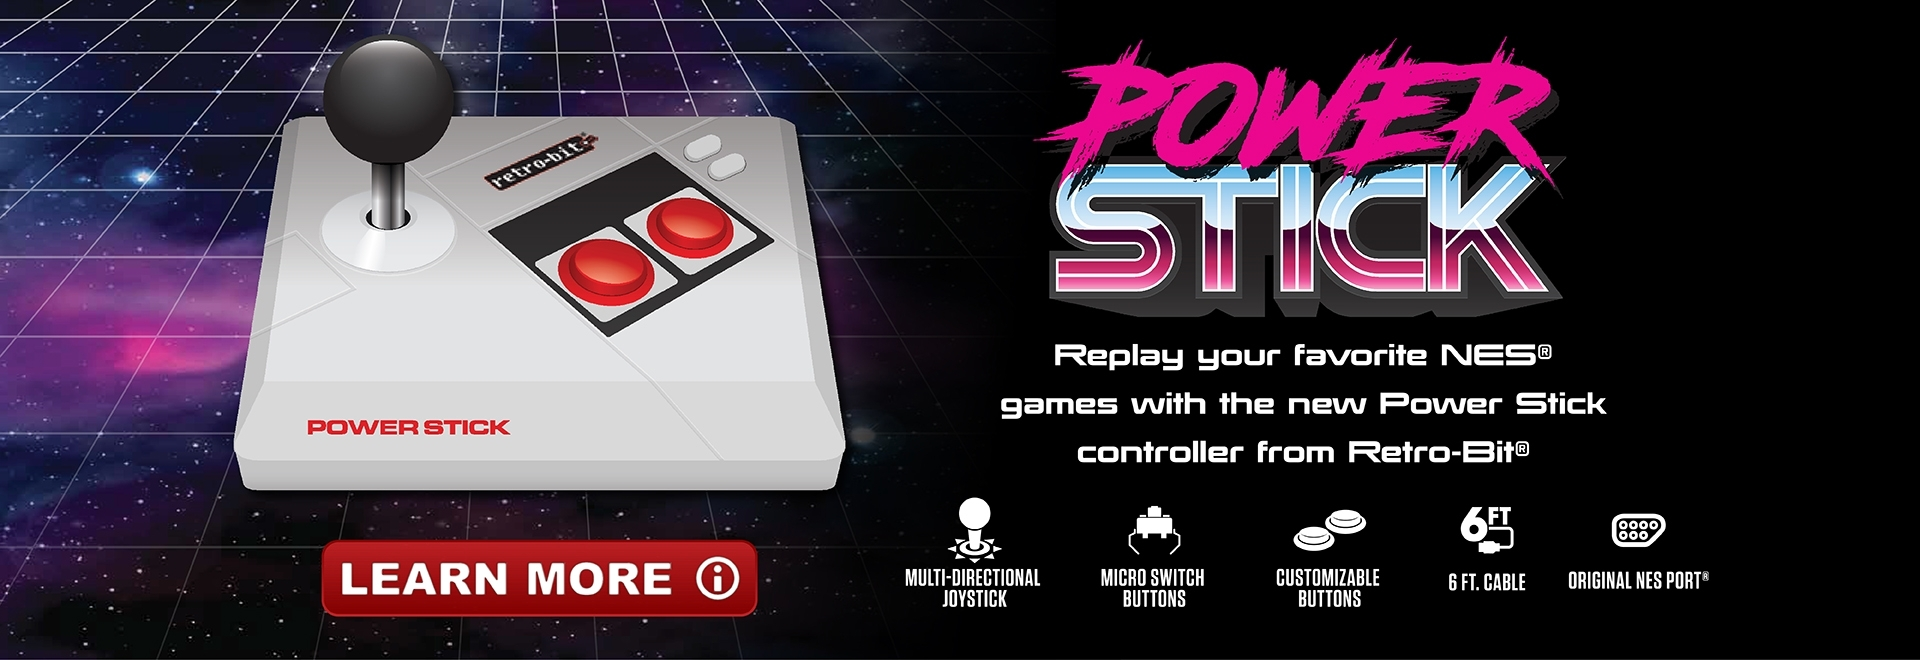 Retro-Bit Power Stick